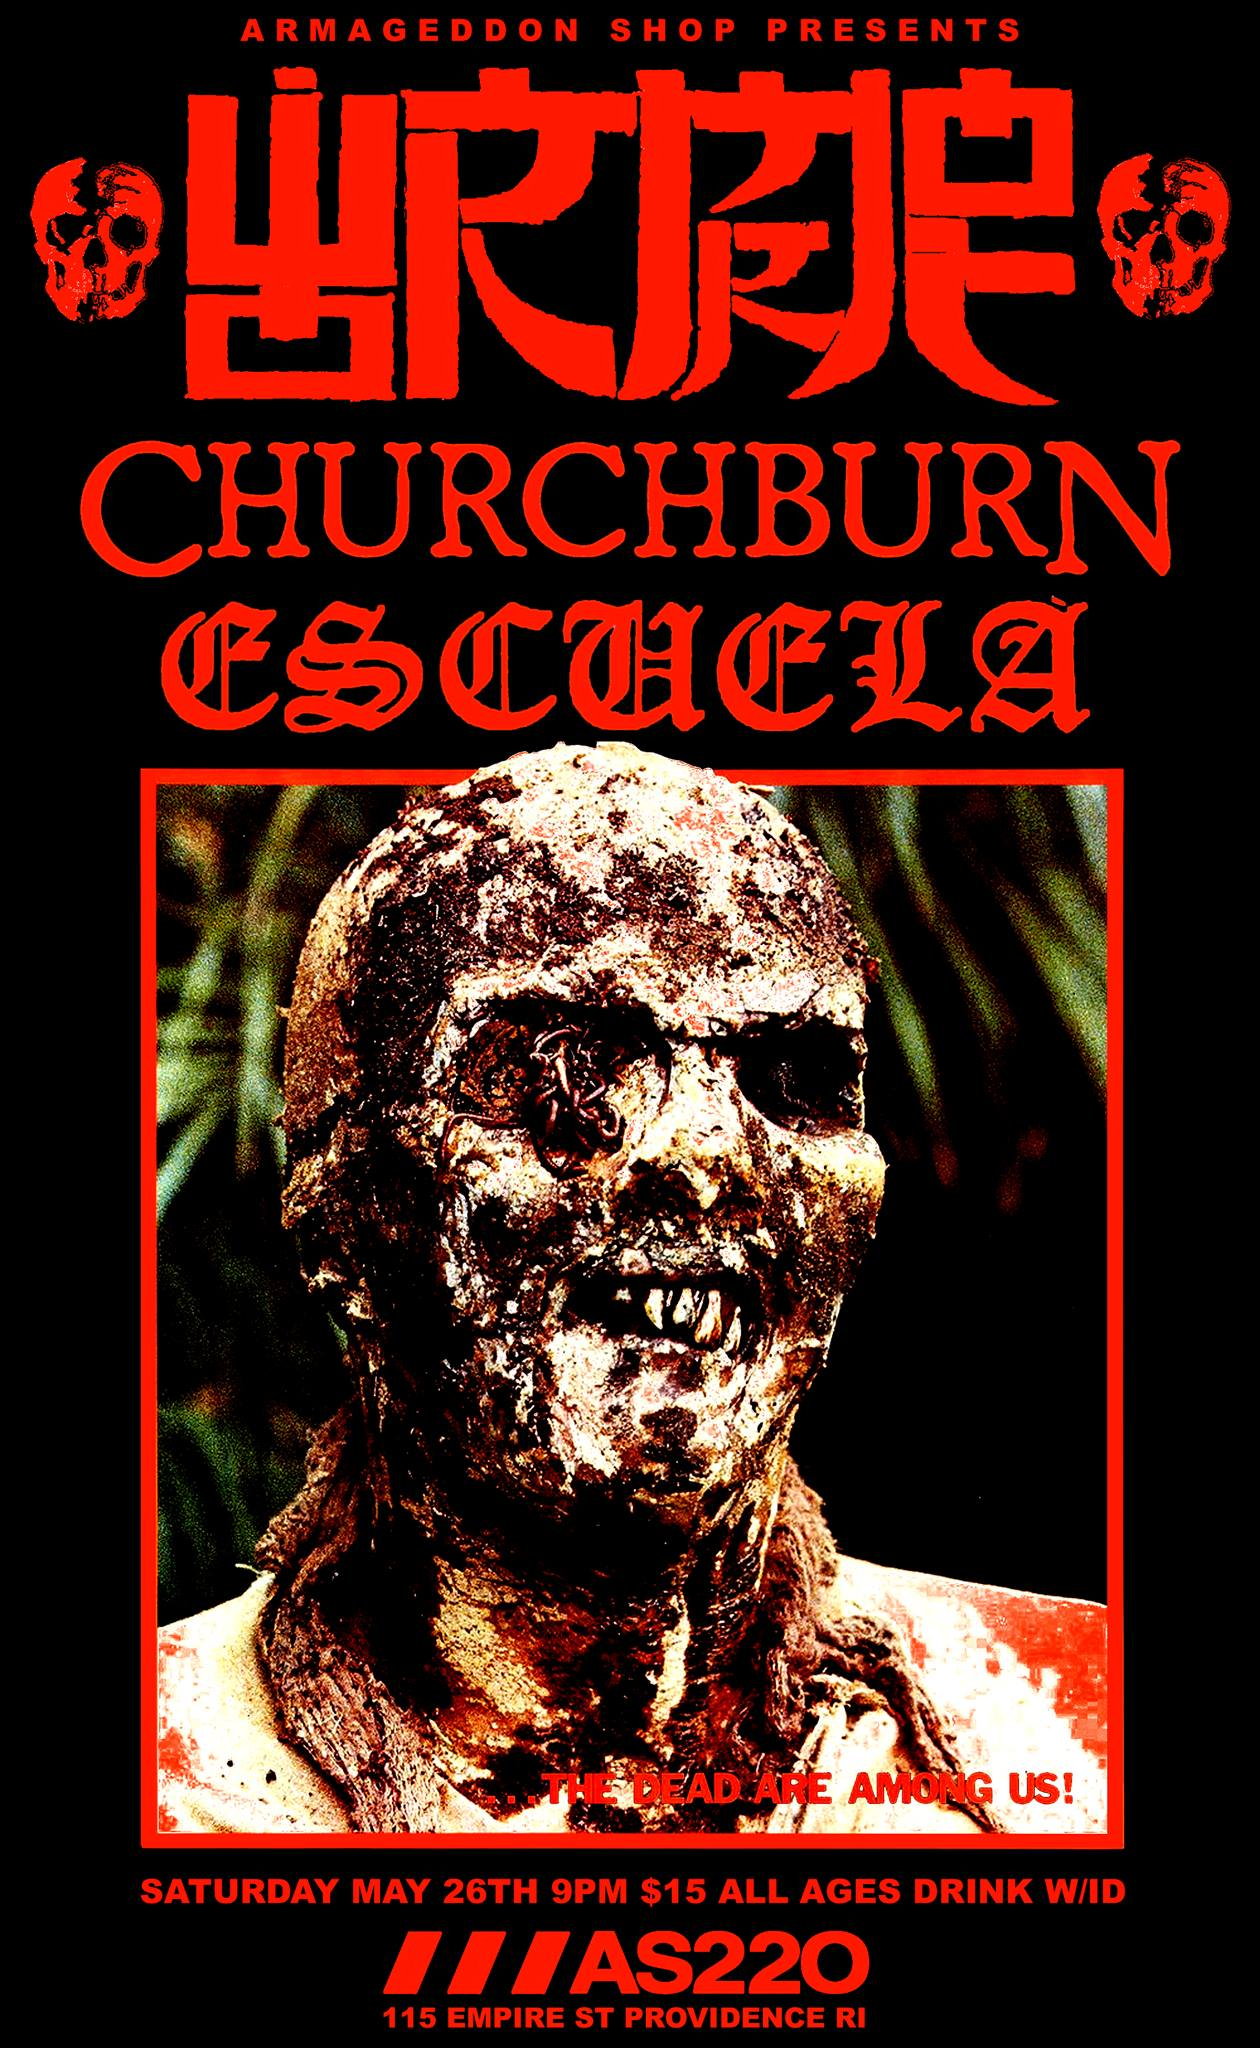 Armageddon Shop Presents: Wormrot, Churchburn, and Escuela @ AS220 Main Stage | Providence | Rhode Island | United States